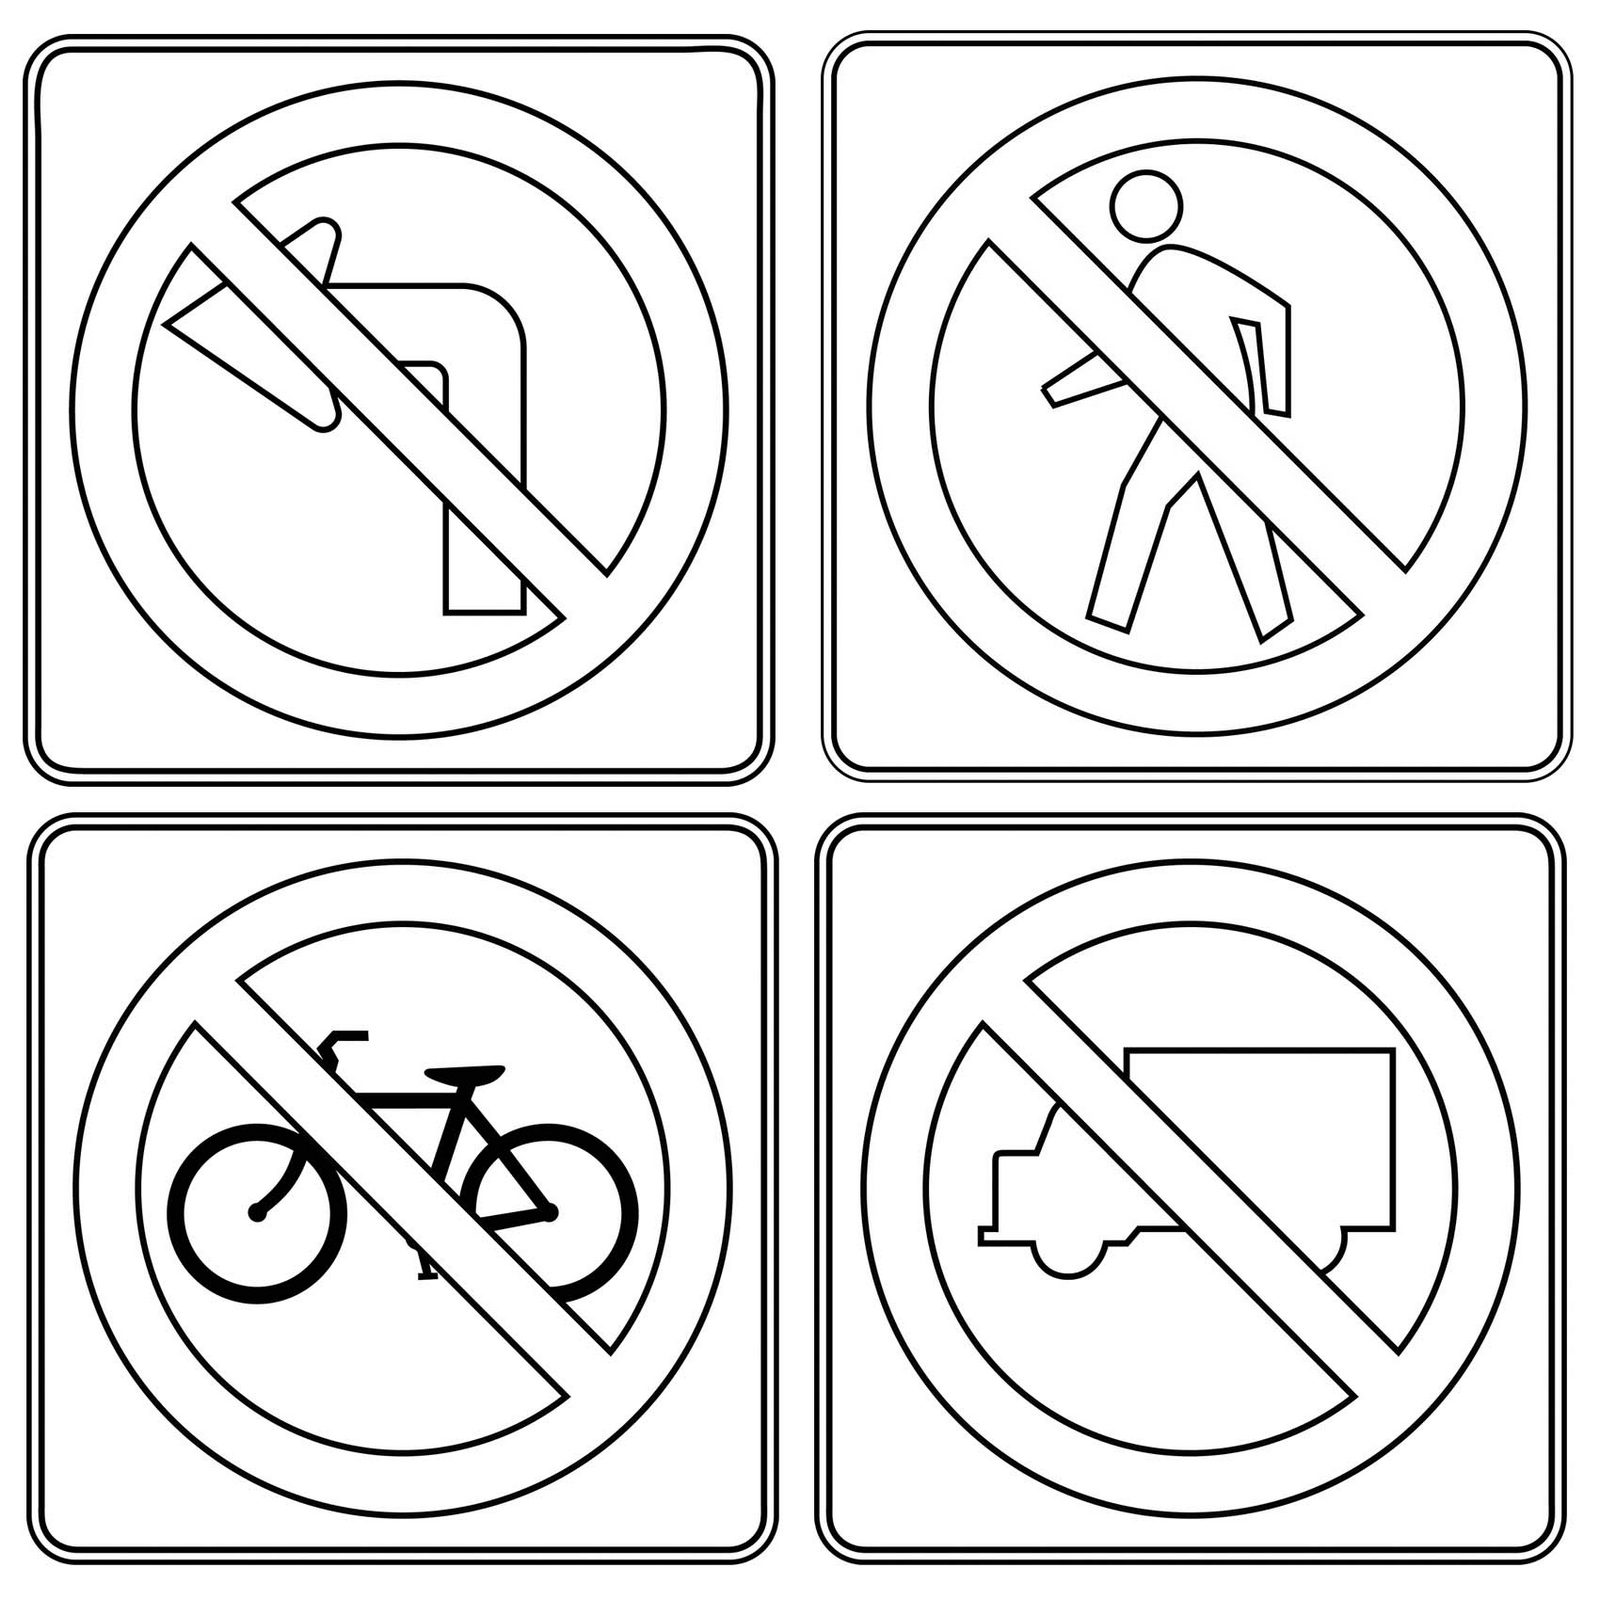 printable traffic signs coloring pages traffic sign coloring pages getcoloringpagescom signs traffic coloring printable pages